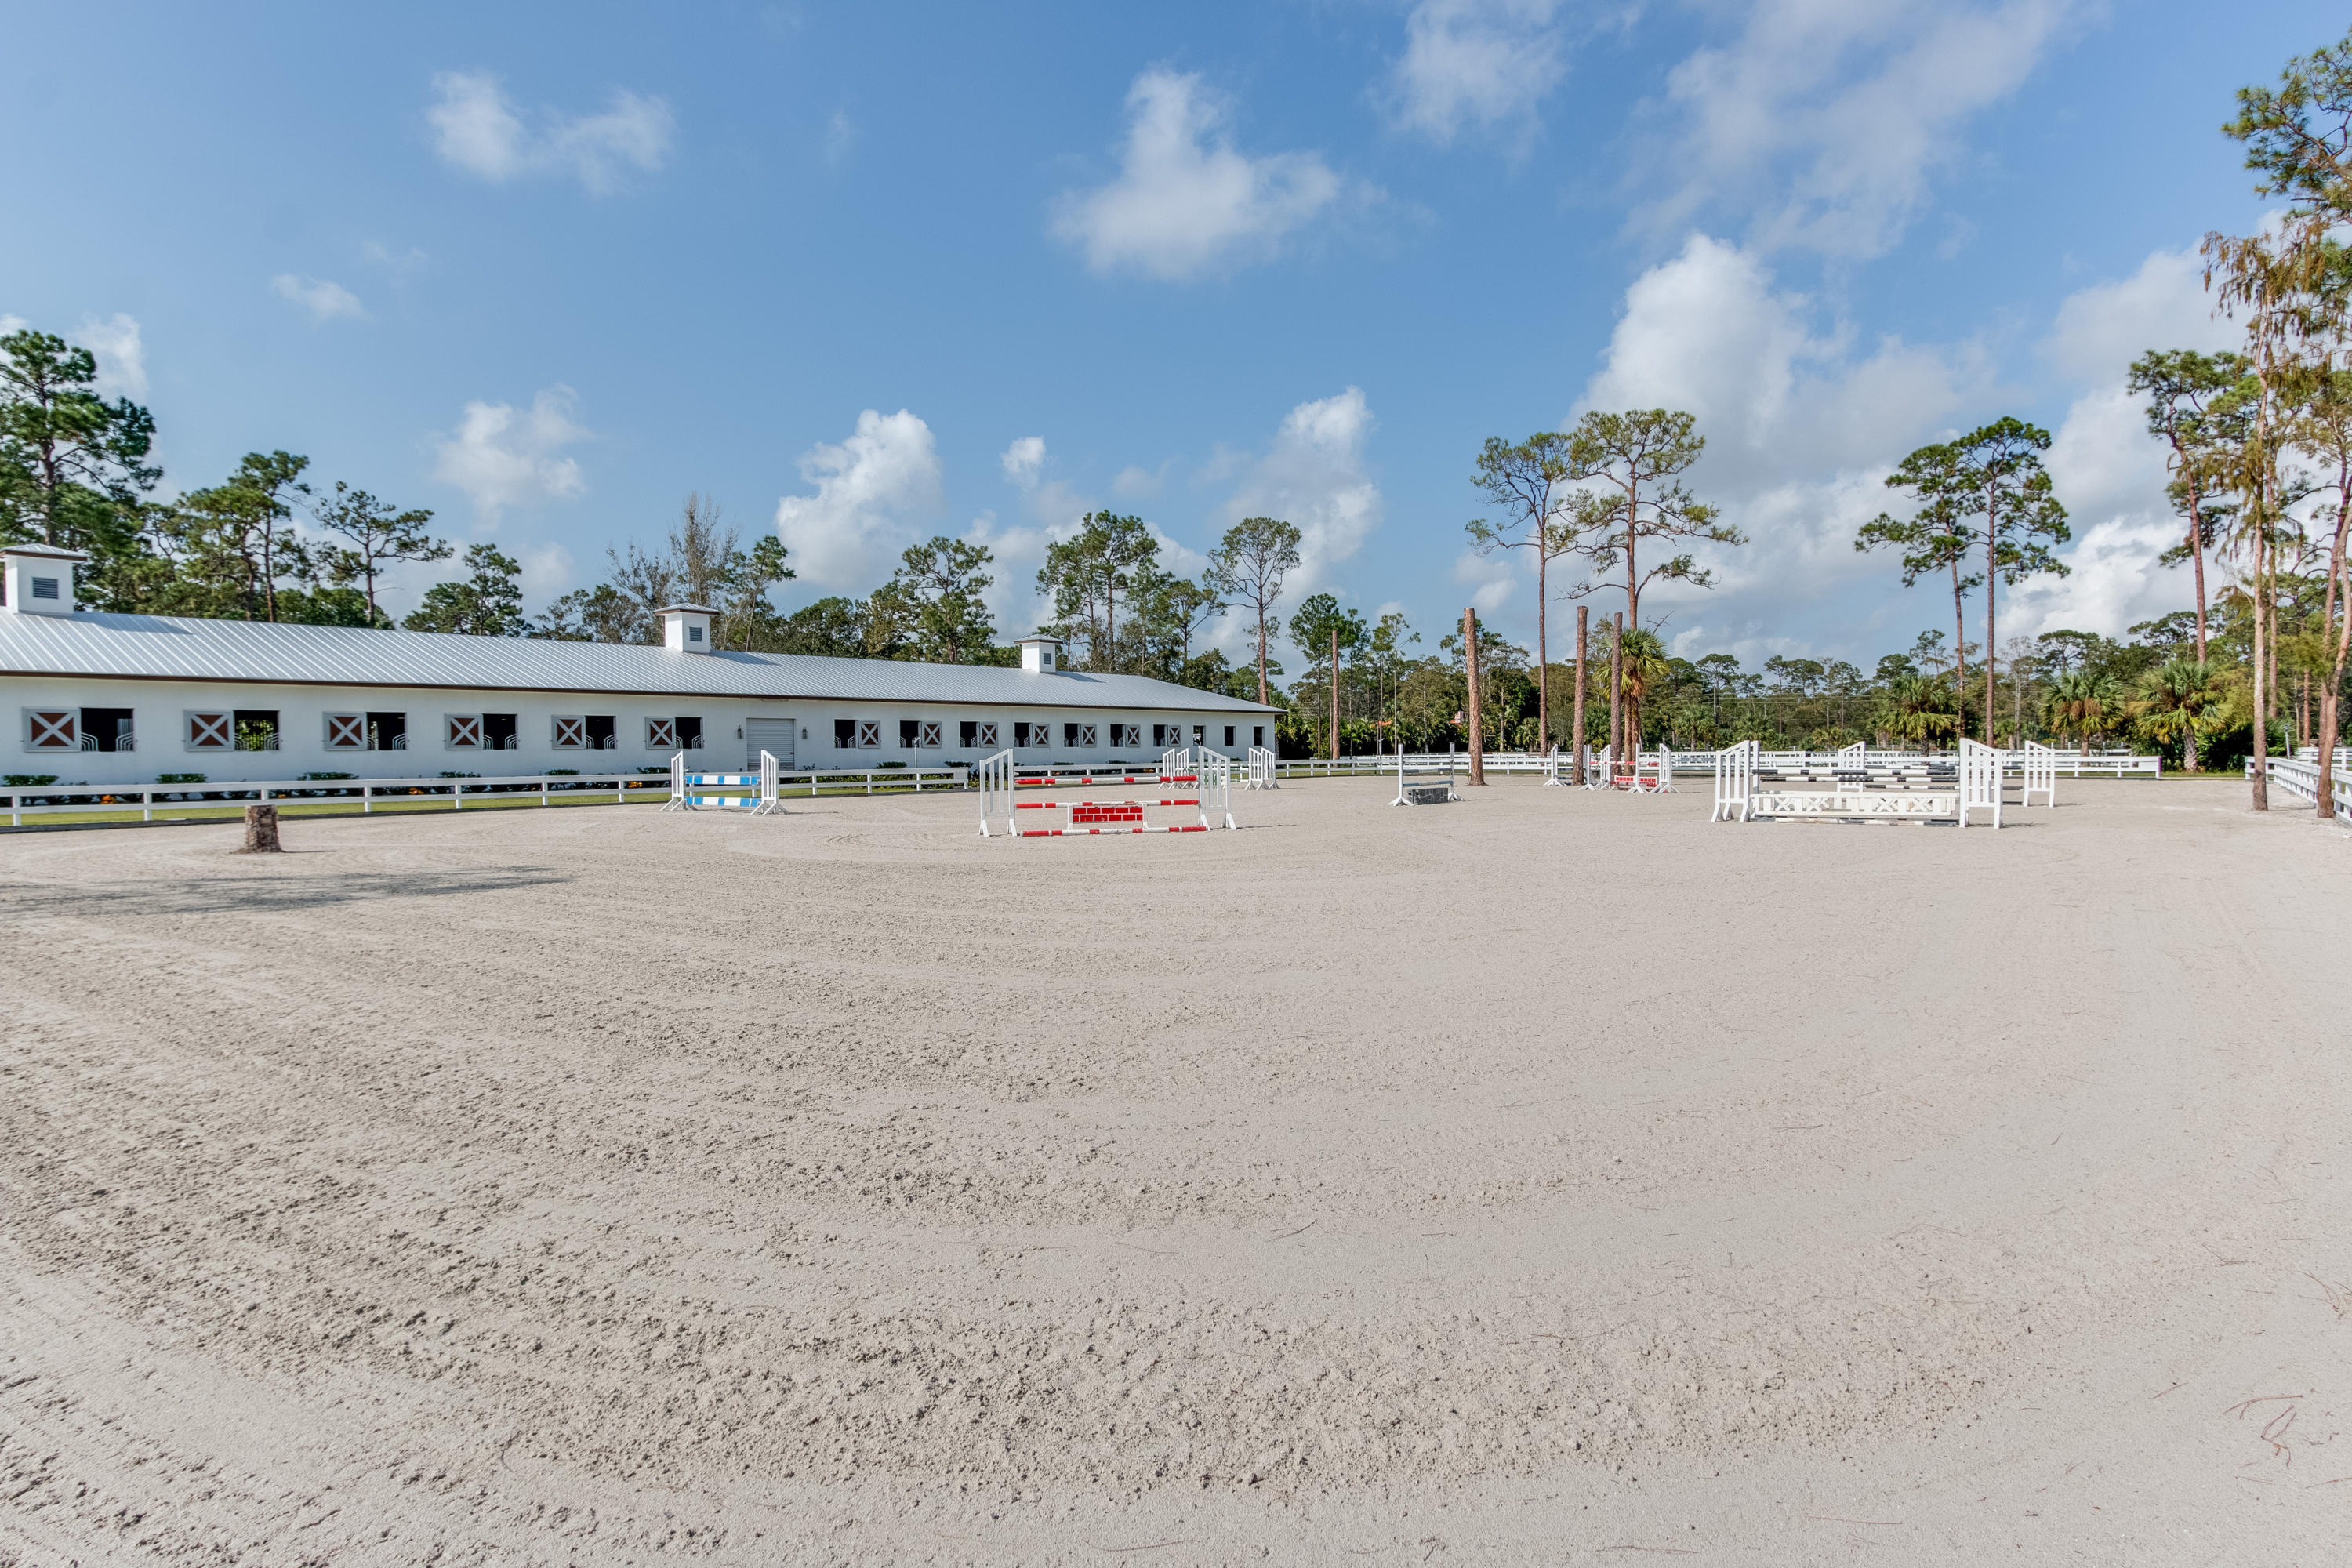 968 C Road, Stalls - Loxahatchee Groves, Florida